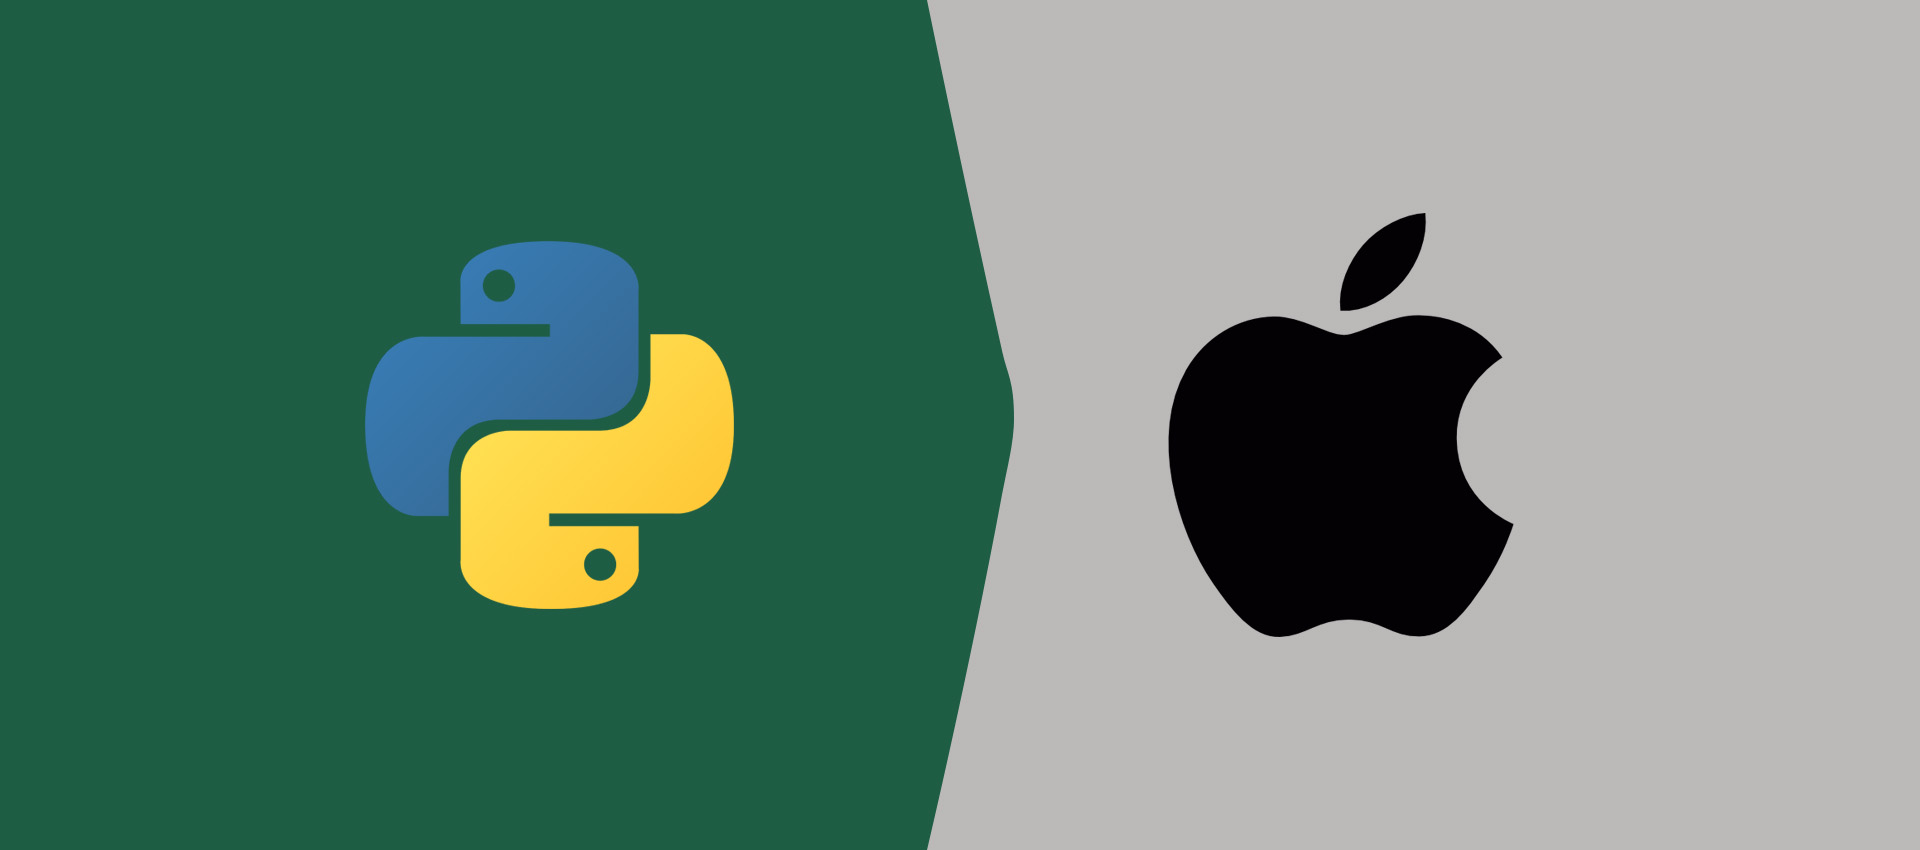 How To Install Python 3.9 On Mac